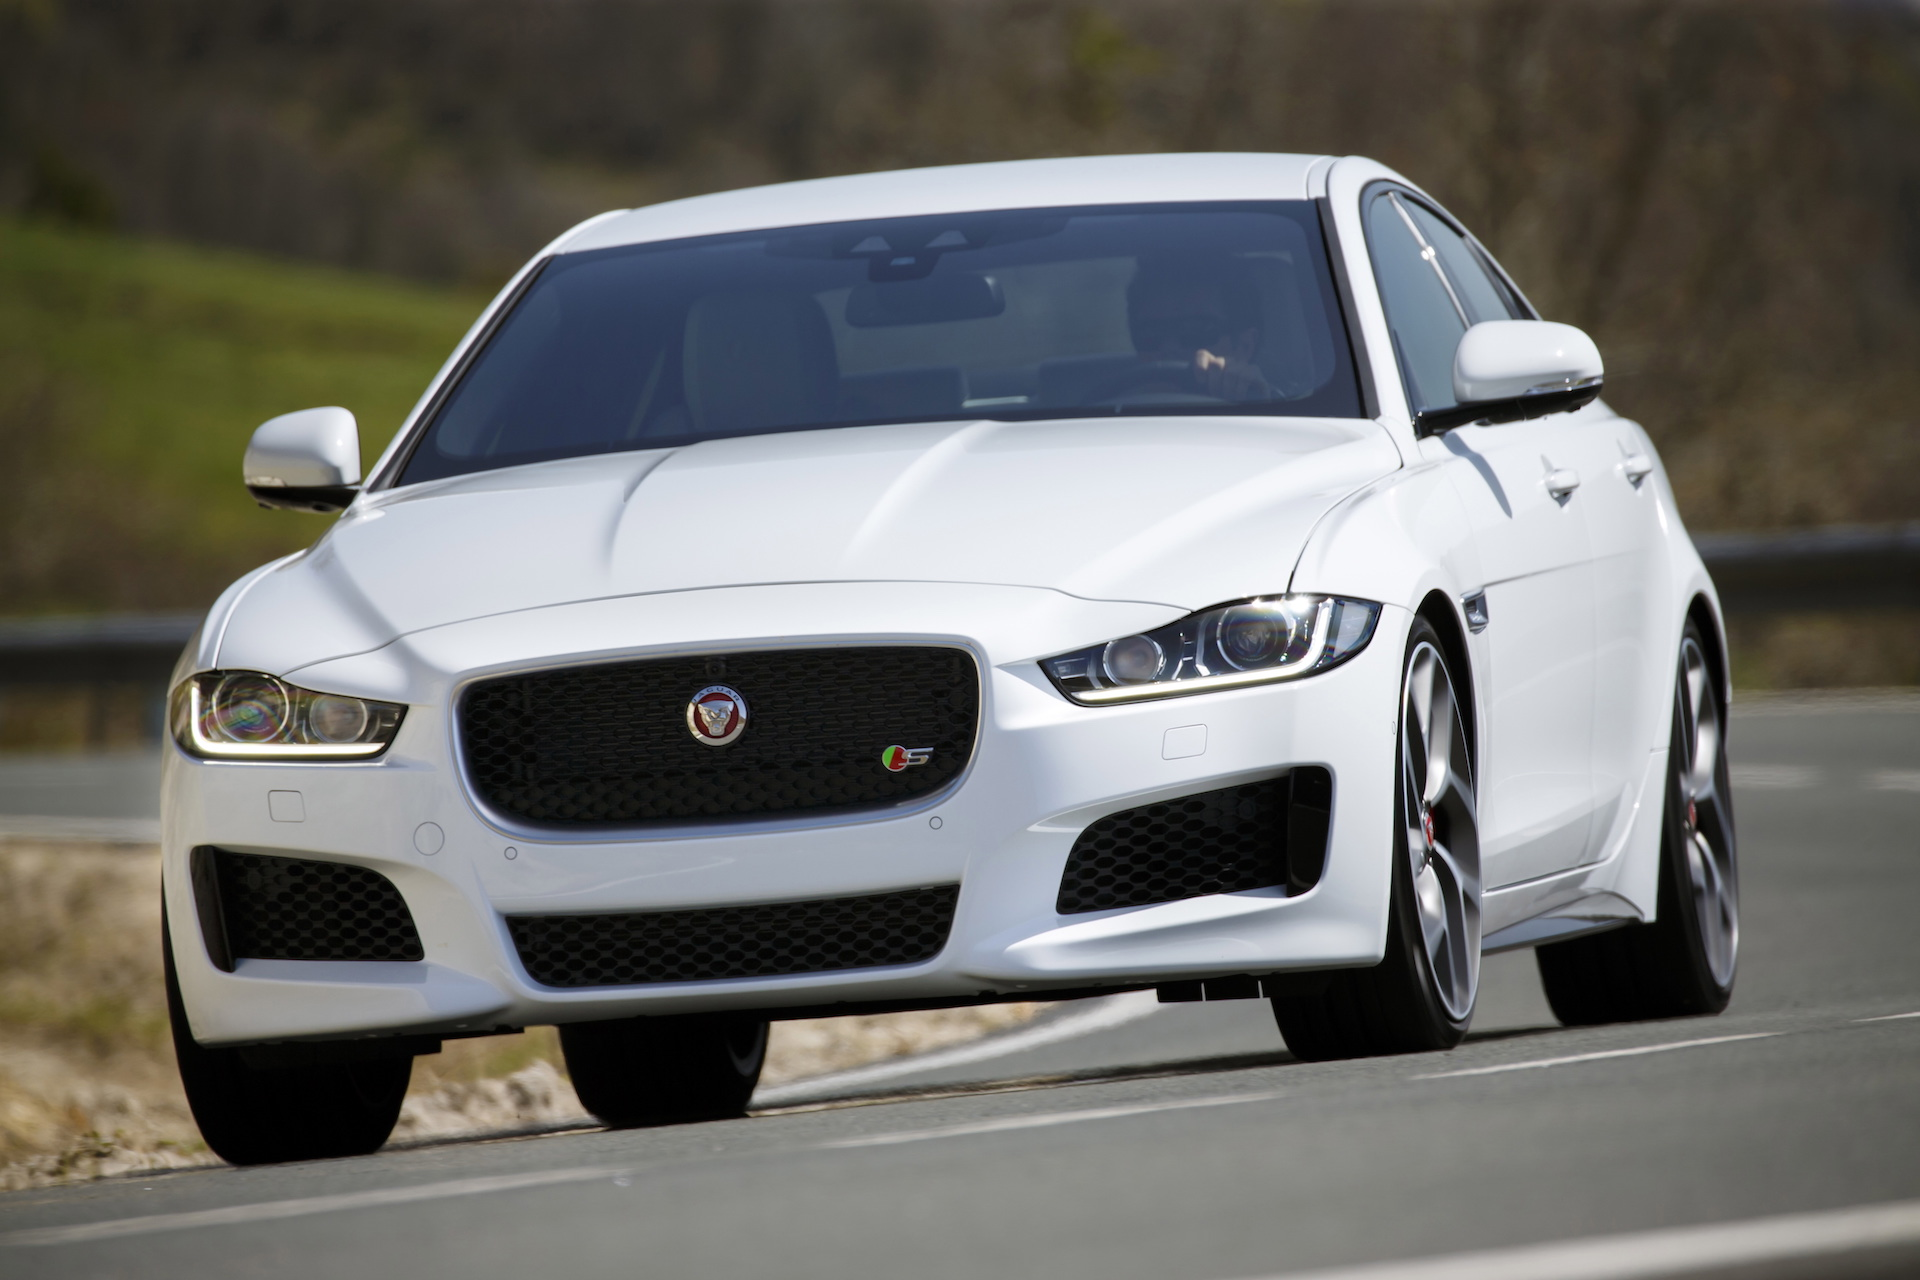 New Cars To Buy 2017 Jaguar Xe Best Car To Buy Nominee